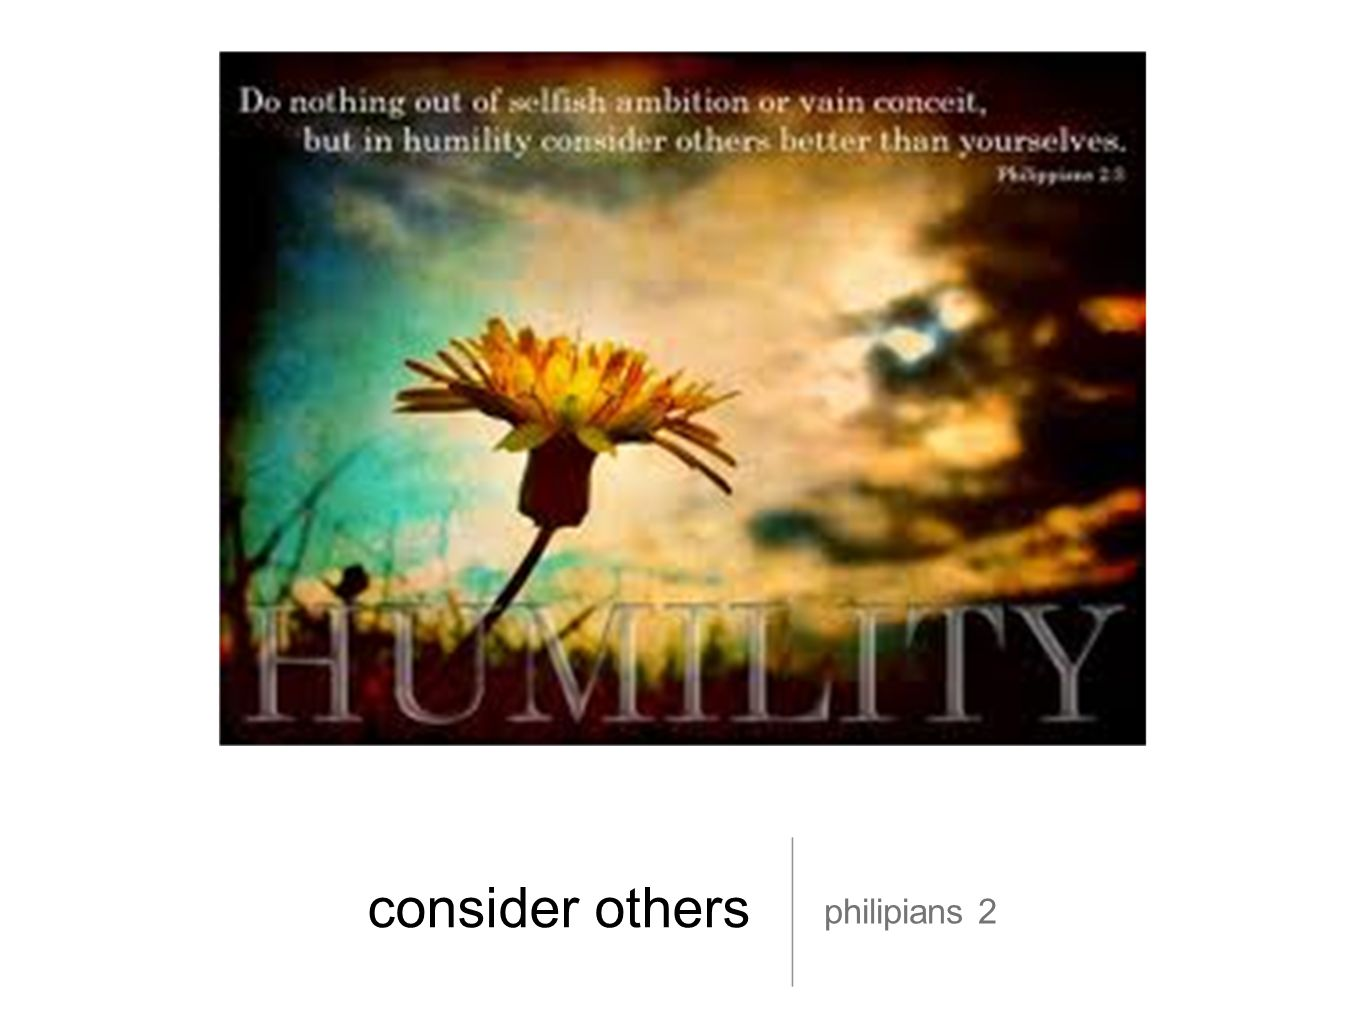 consider others philipians 2